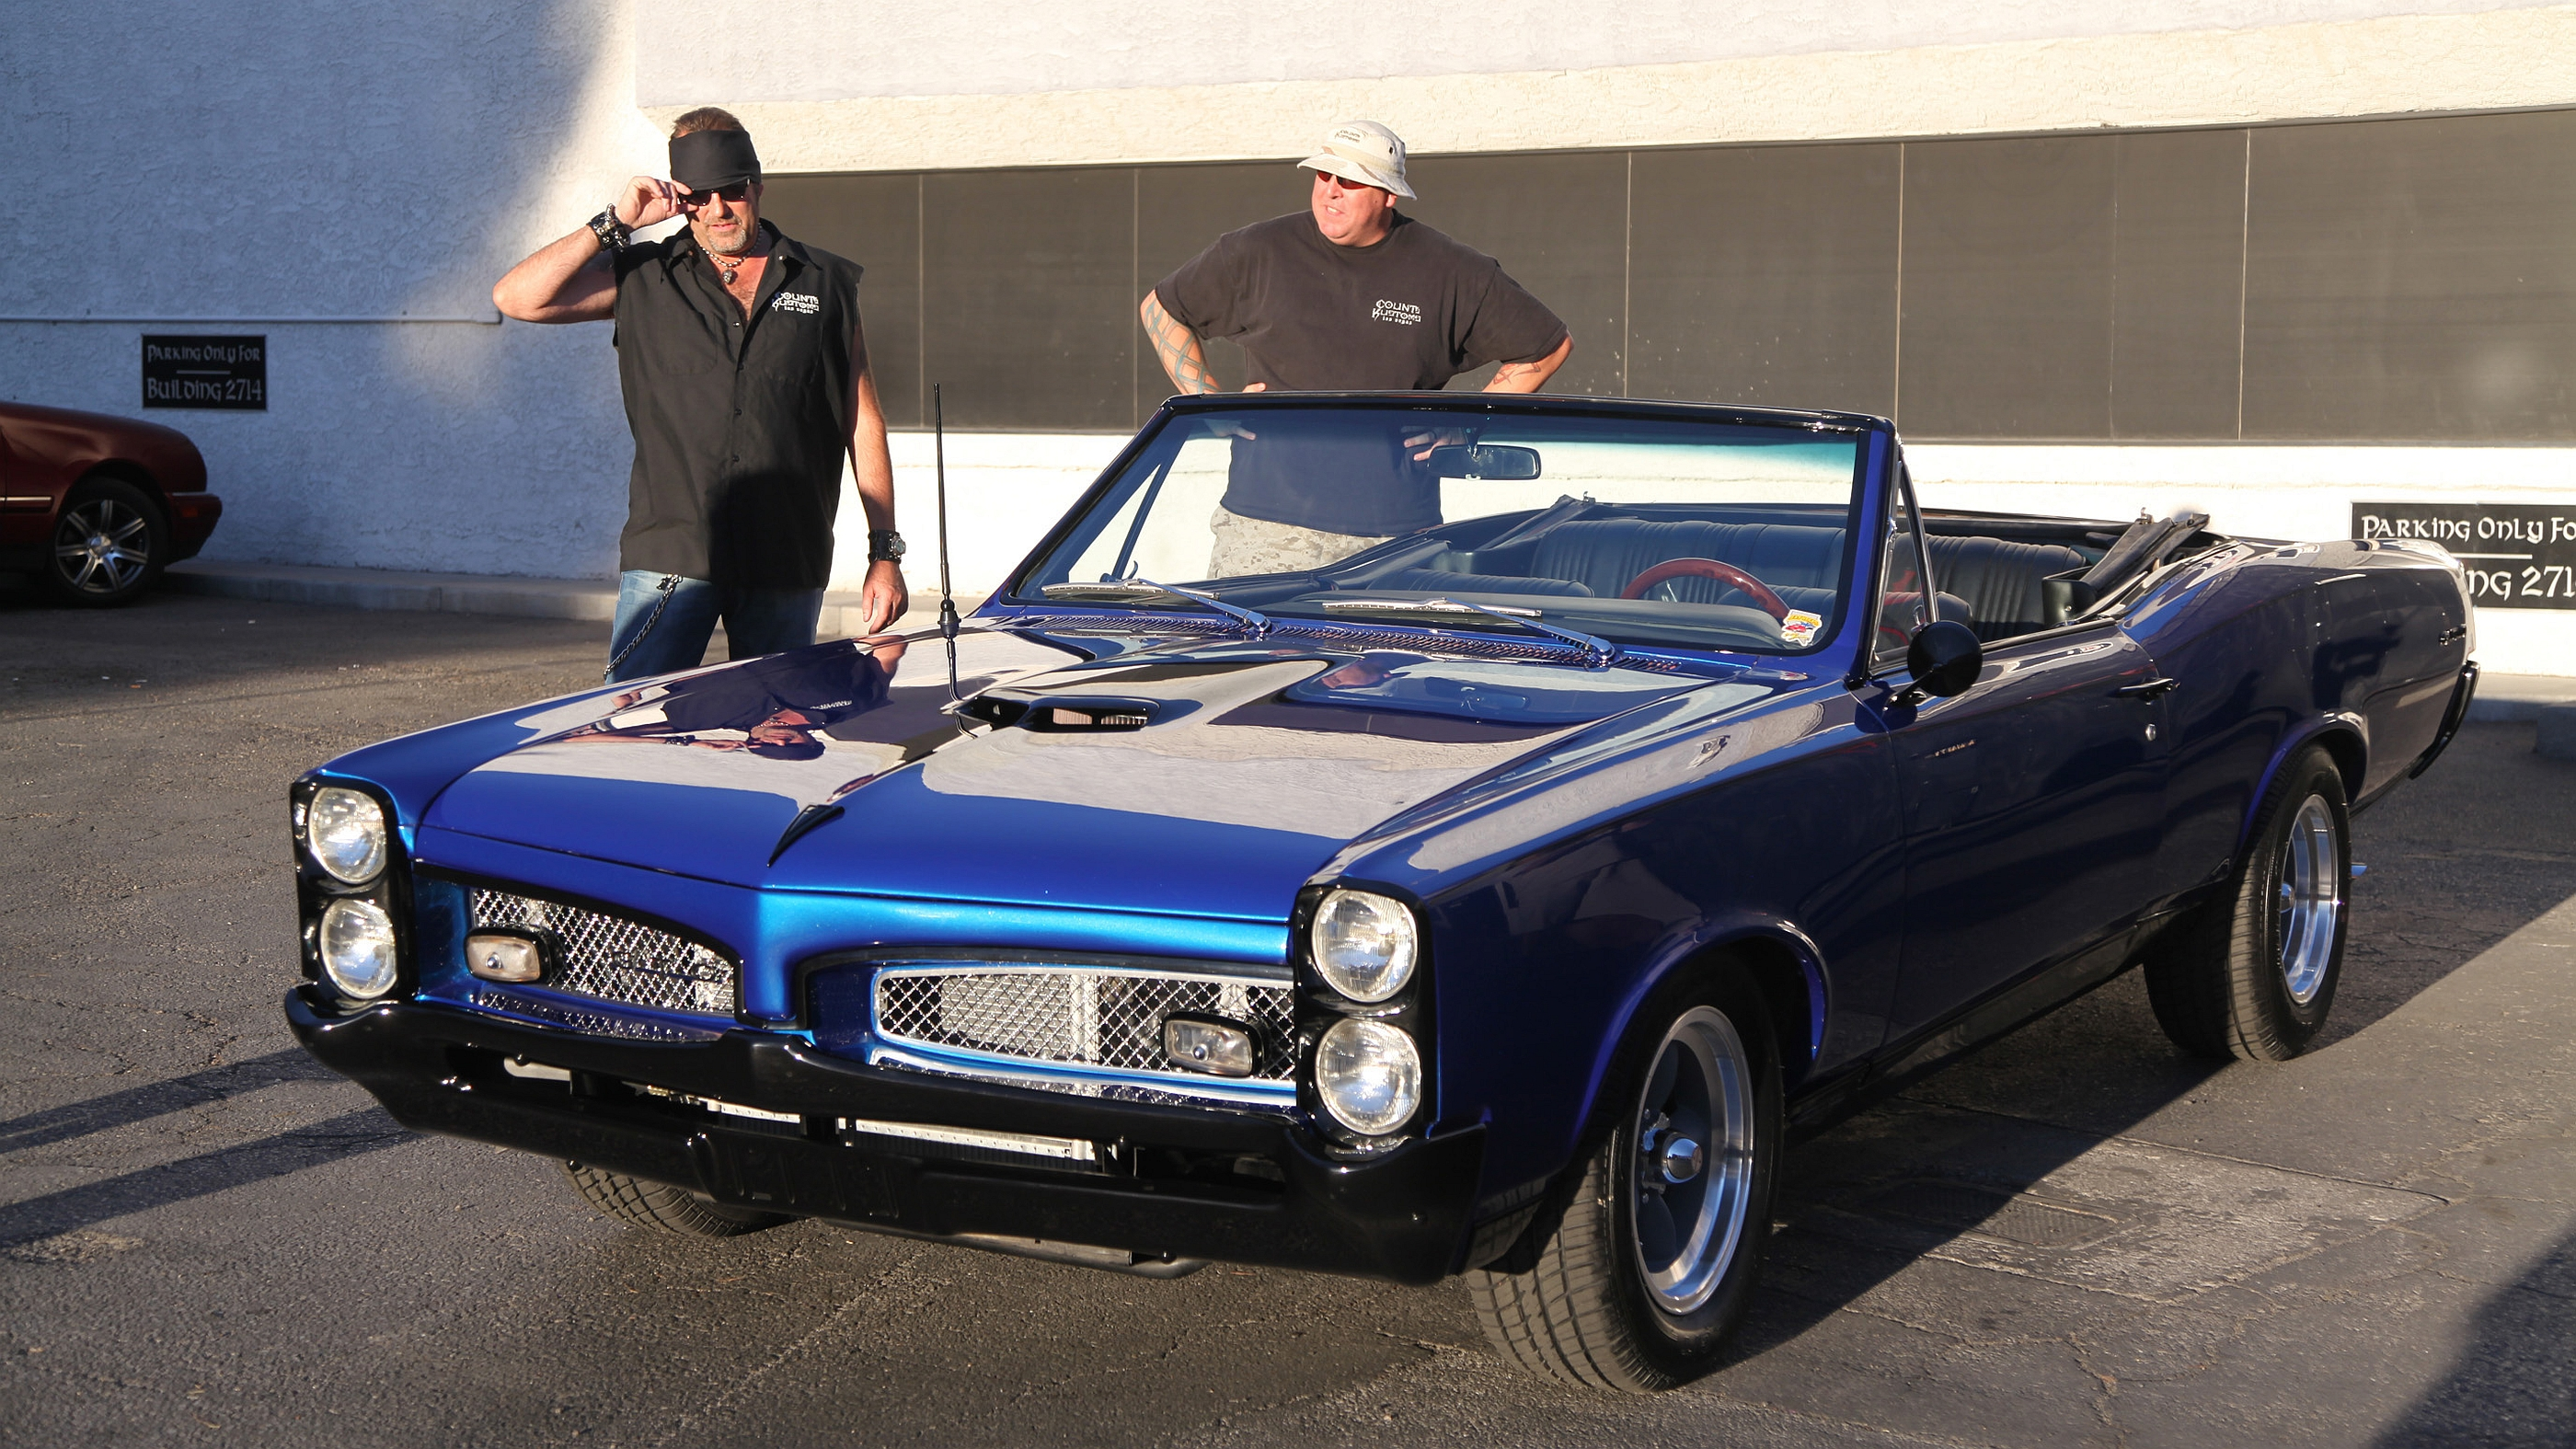 Counting Cars Full Hd Wallpaper And Background Image